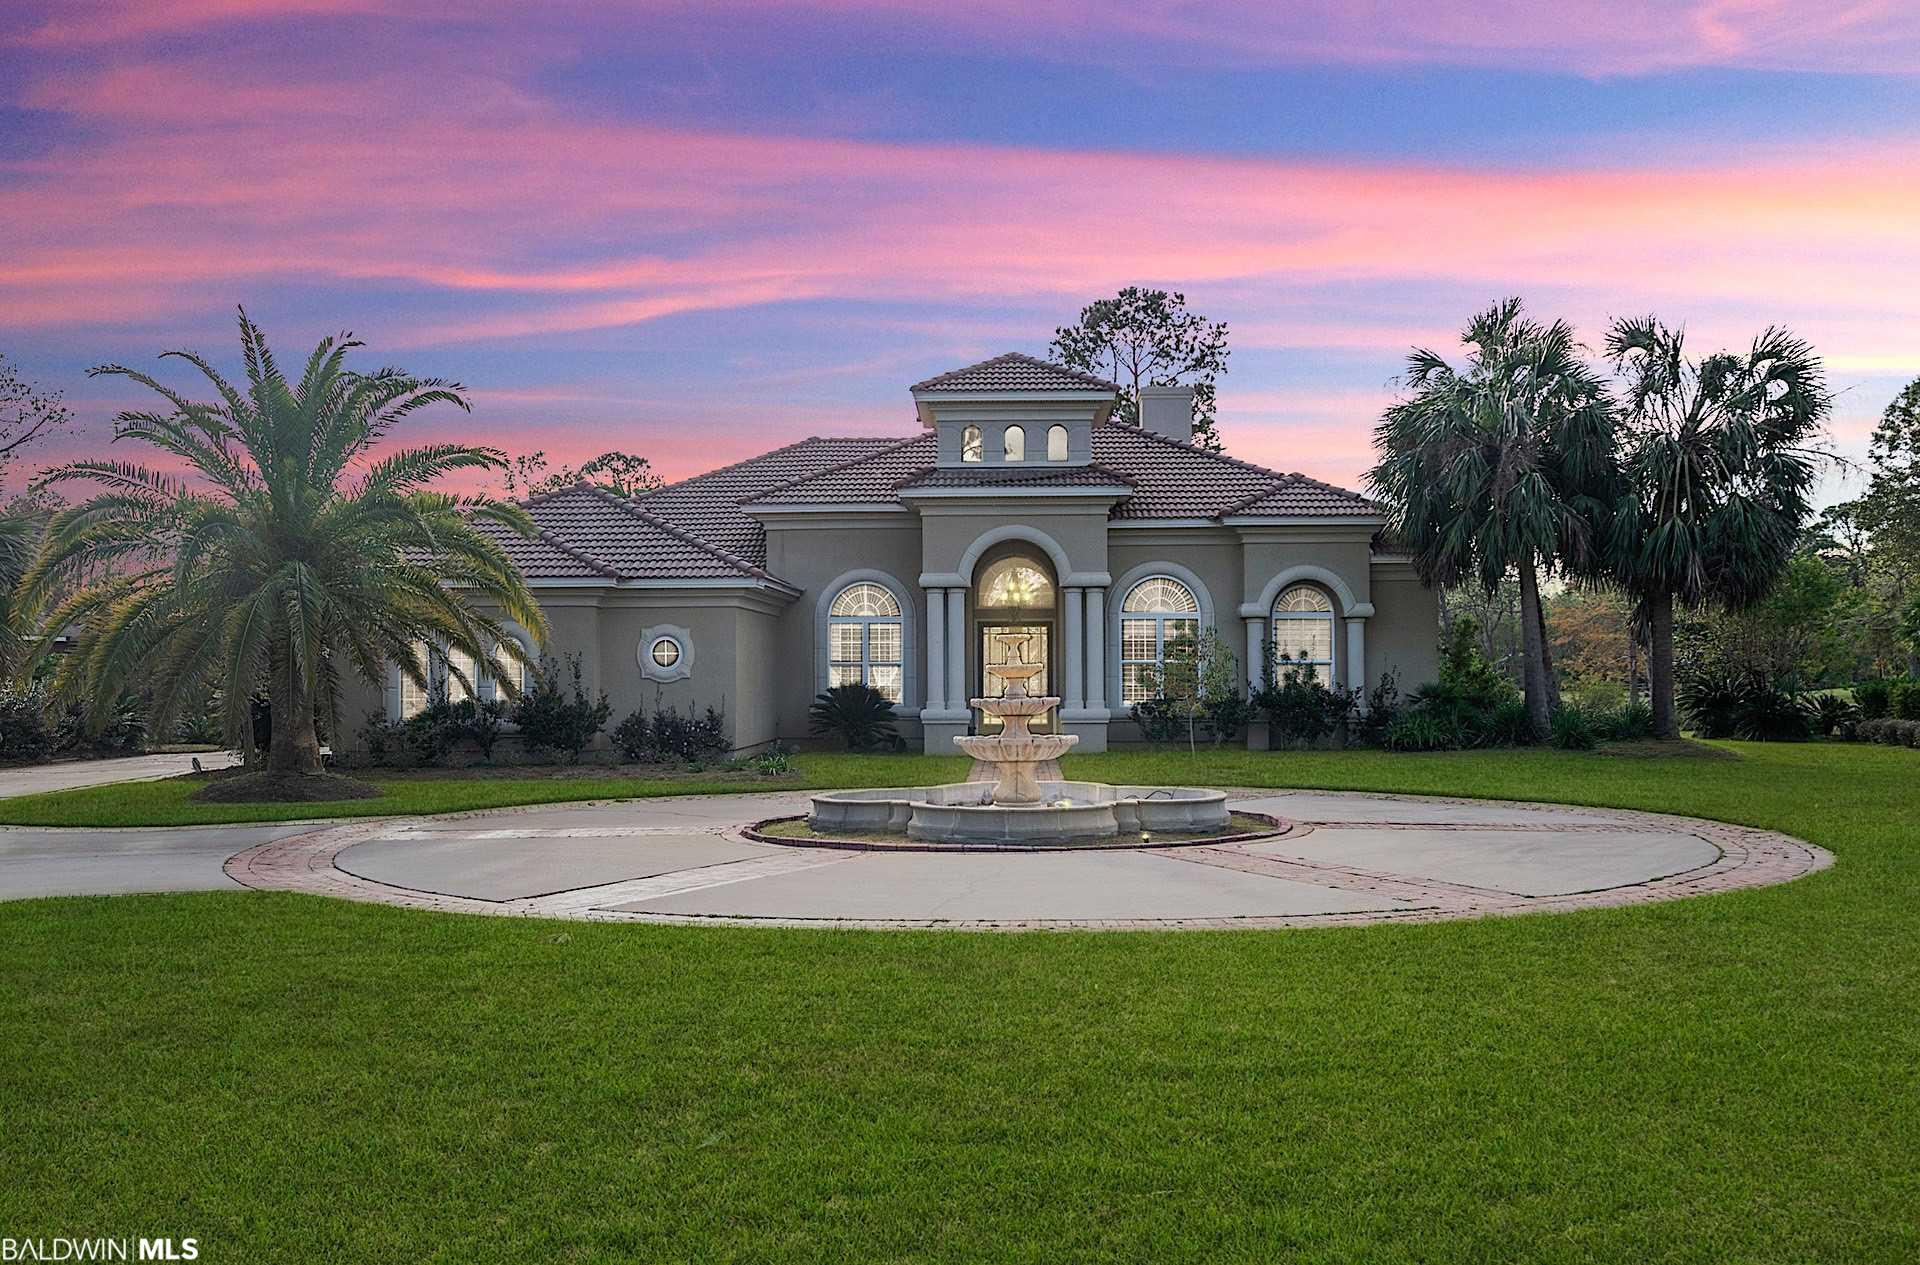 Own in the exclusive gated community of The Estates for Craft Farms overlooking the 16th fairway of the Cotton Creek golf course.  This luxury Arthur Rutenberg designed Mediterranean style home wows immediately when you drive up to the elegant circular driveway with brick inlay & free-standing fountain.  Inside the home features upscale travertine floors, dining room with built-in buffet & lighted wall sconces, separate living room with gas fireplace, and open-concept kitchen overlooking the great room.  Kitchen has all matching GE Monogram stainless appliances, 5-burner gas cooktop, sink in chef's island, and walk-in pantry.  Butler's pantry featuring wet bar with wine cooler & ice maker leading to the dining room from kitchen.  Master suite features his & her separate custom closets & individual vanities in master bathroom, large walk-in tiled shower, and jetted soaking tub.  All rooms at the back of the home have a stunning view of the pool & spa through wall-to-wall & floor-to-ceiling sliding glass doors.  This home is a dream for entertaining because sliders completely open to pool area with outdoor Vermont Castings gas grill & vent hood, gas fireplace, and covered gazebo.  During cooler months, enjoy entertaining in the 20x14 recreation room that includes a beverage bar with refrigerator & microwave and is large enough for a billiard table or theater room.  Private office with cherry wood floors and built-in shelves.  Large two-car garage & golf cart garage. Schedule your private showing today!